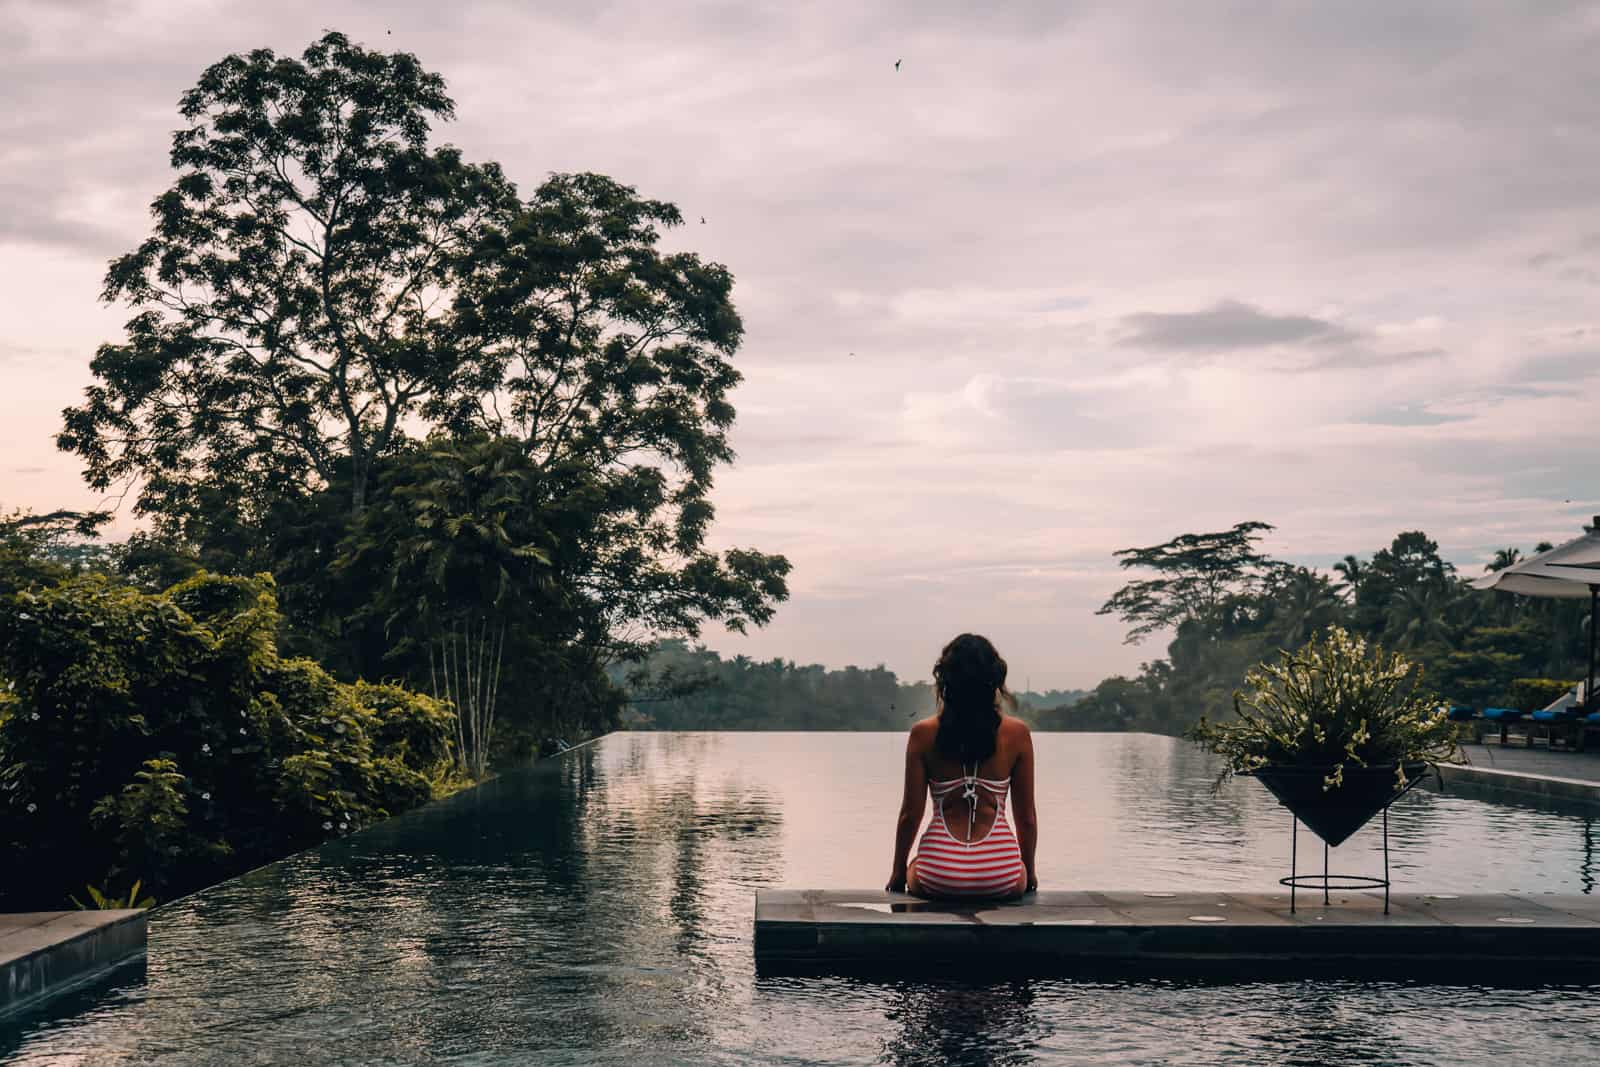 Alilia Ubud - Dschungel Wellnessoase mit Infinity Pool & Outdoorbad 10